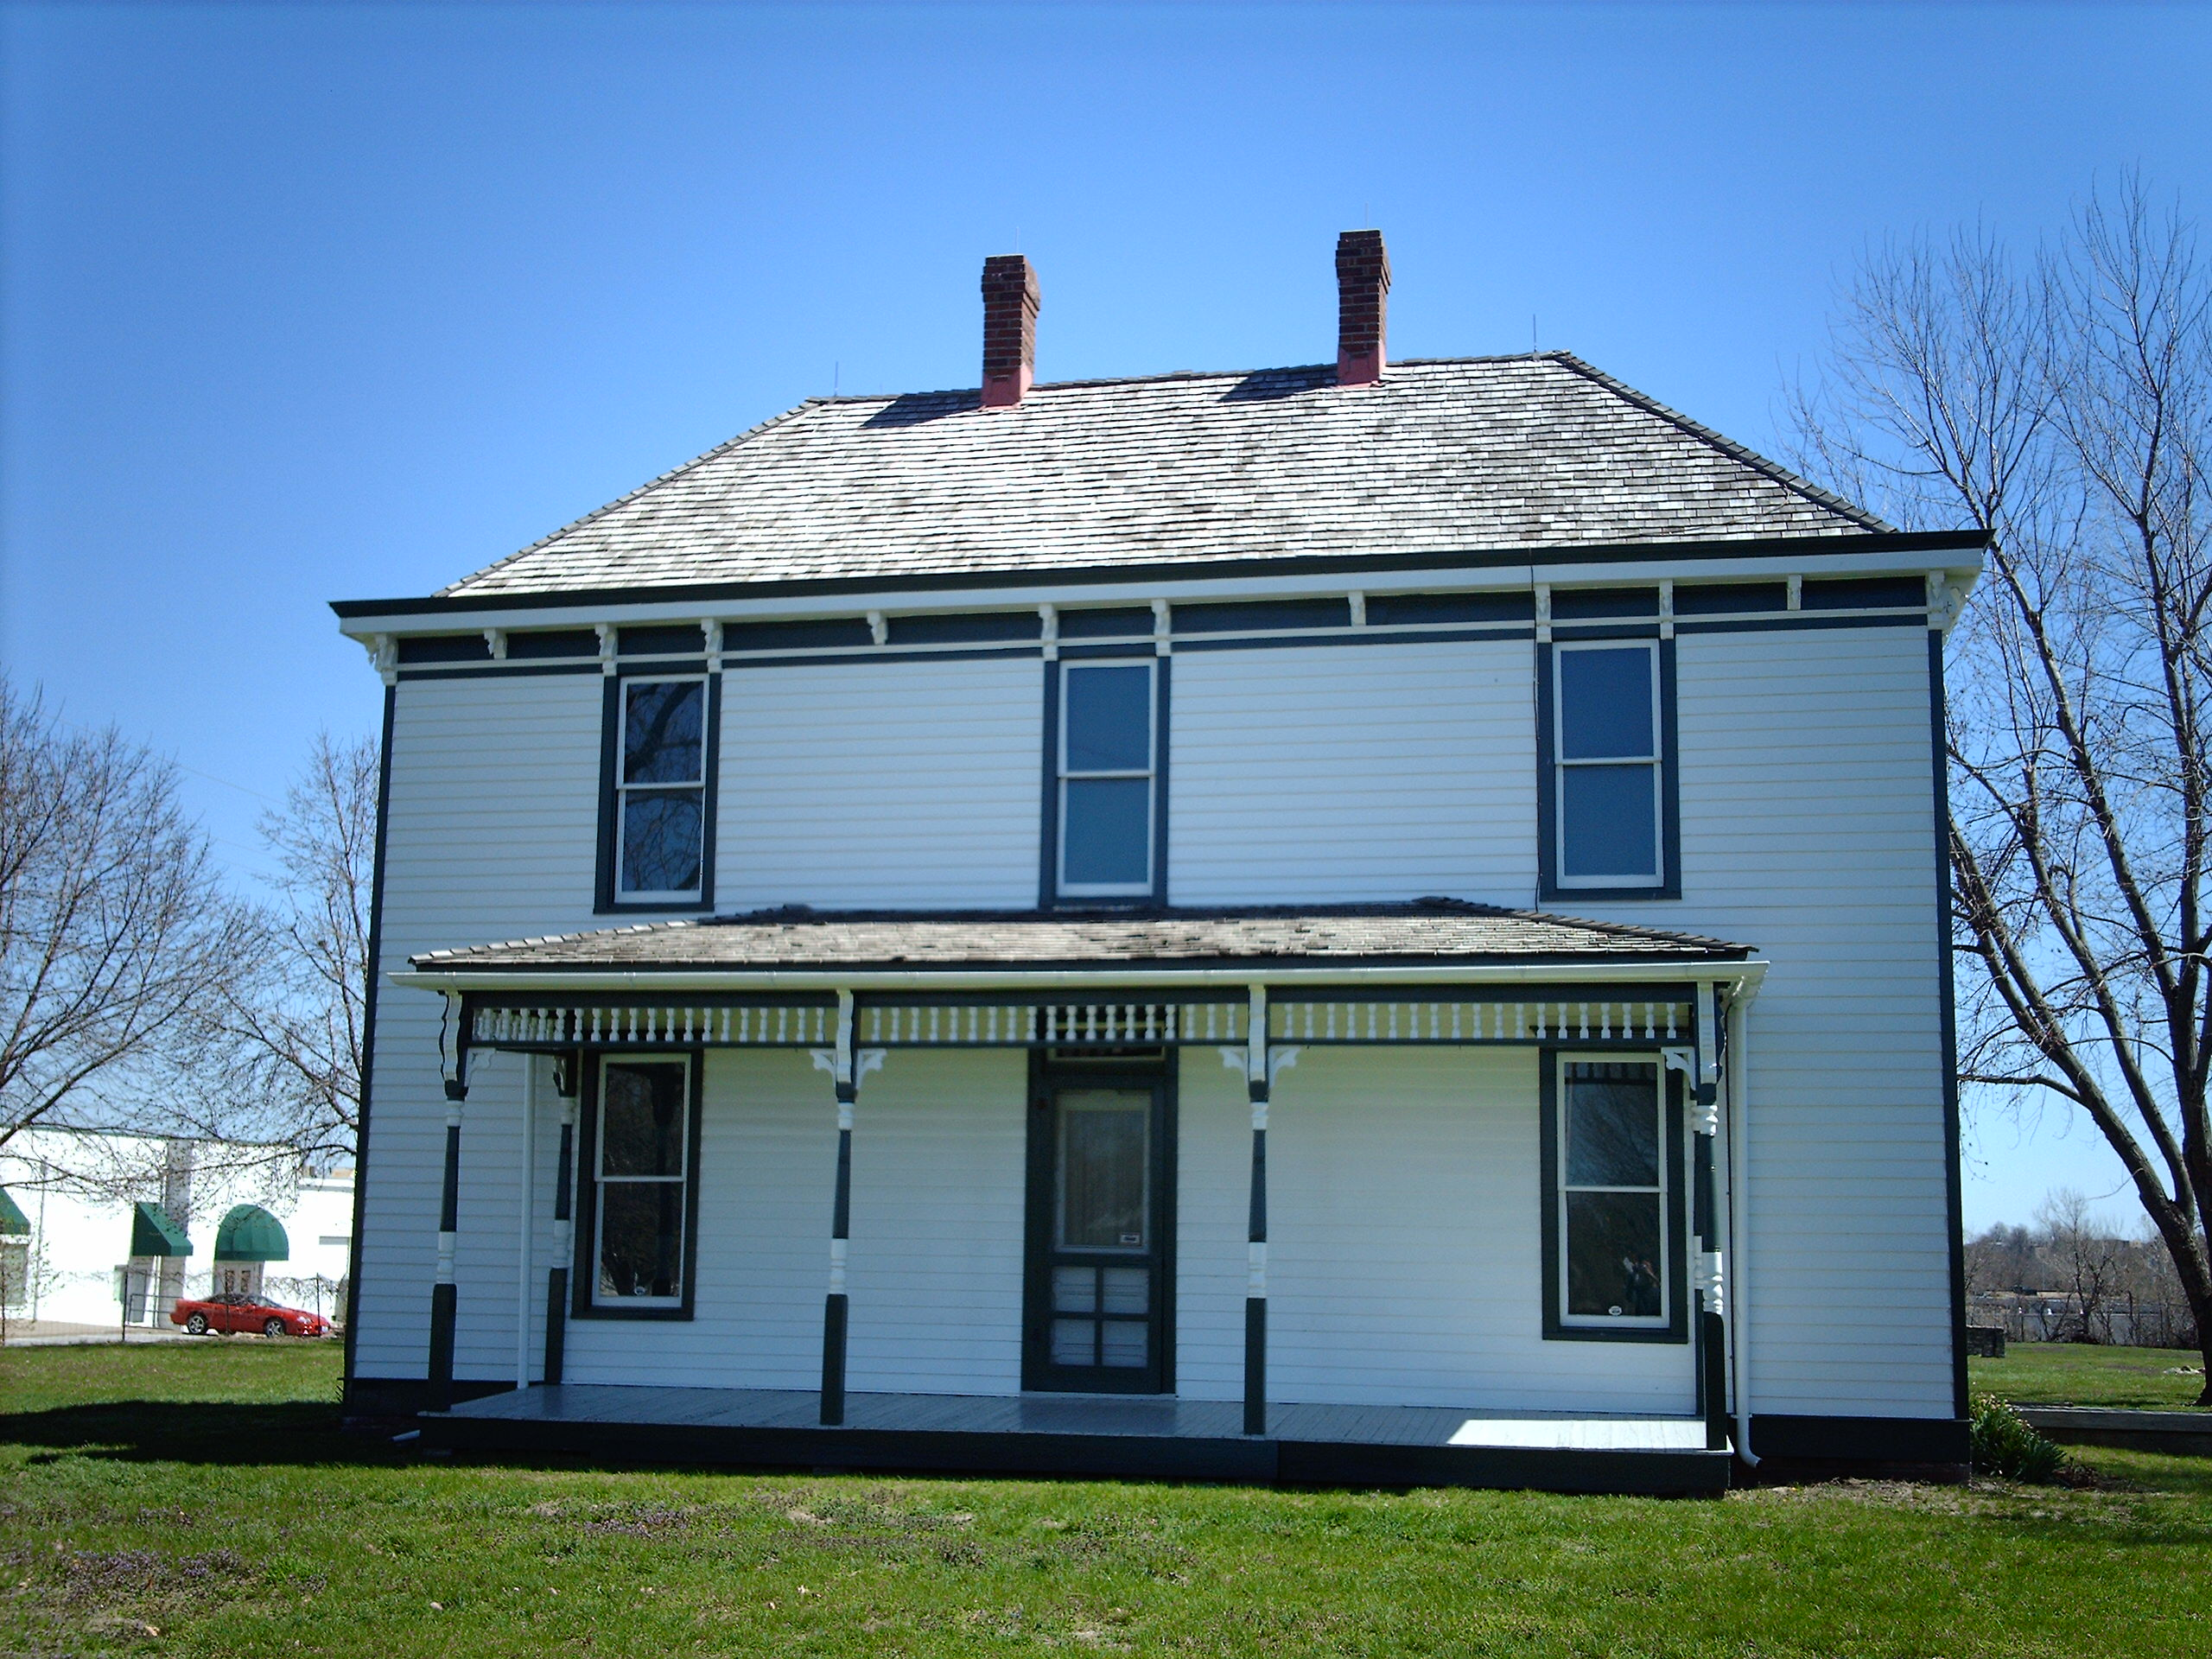 The Harry S. Truman Farm Home in Grandview, Missouri, part of the Harry S. Truman National Historic Site. A National Historic Landmark, the farmhouse at 12301 Blue Ridge Boulevard was built in 1894 by Harry Truman's maternal grandmother, and is the centerpiece of a 5.25-acre (2.12 ha) remnant of the family's former 600-acre (240 ha) farm. Truman worked the farm as a young man, from 1906–1917. Photo taken on March 31, 2006.